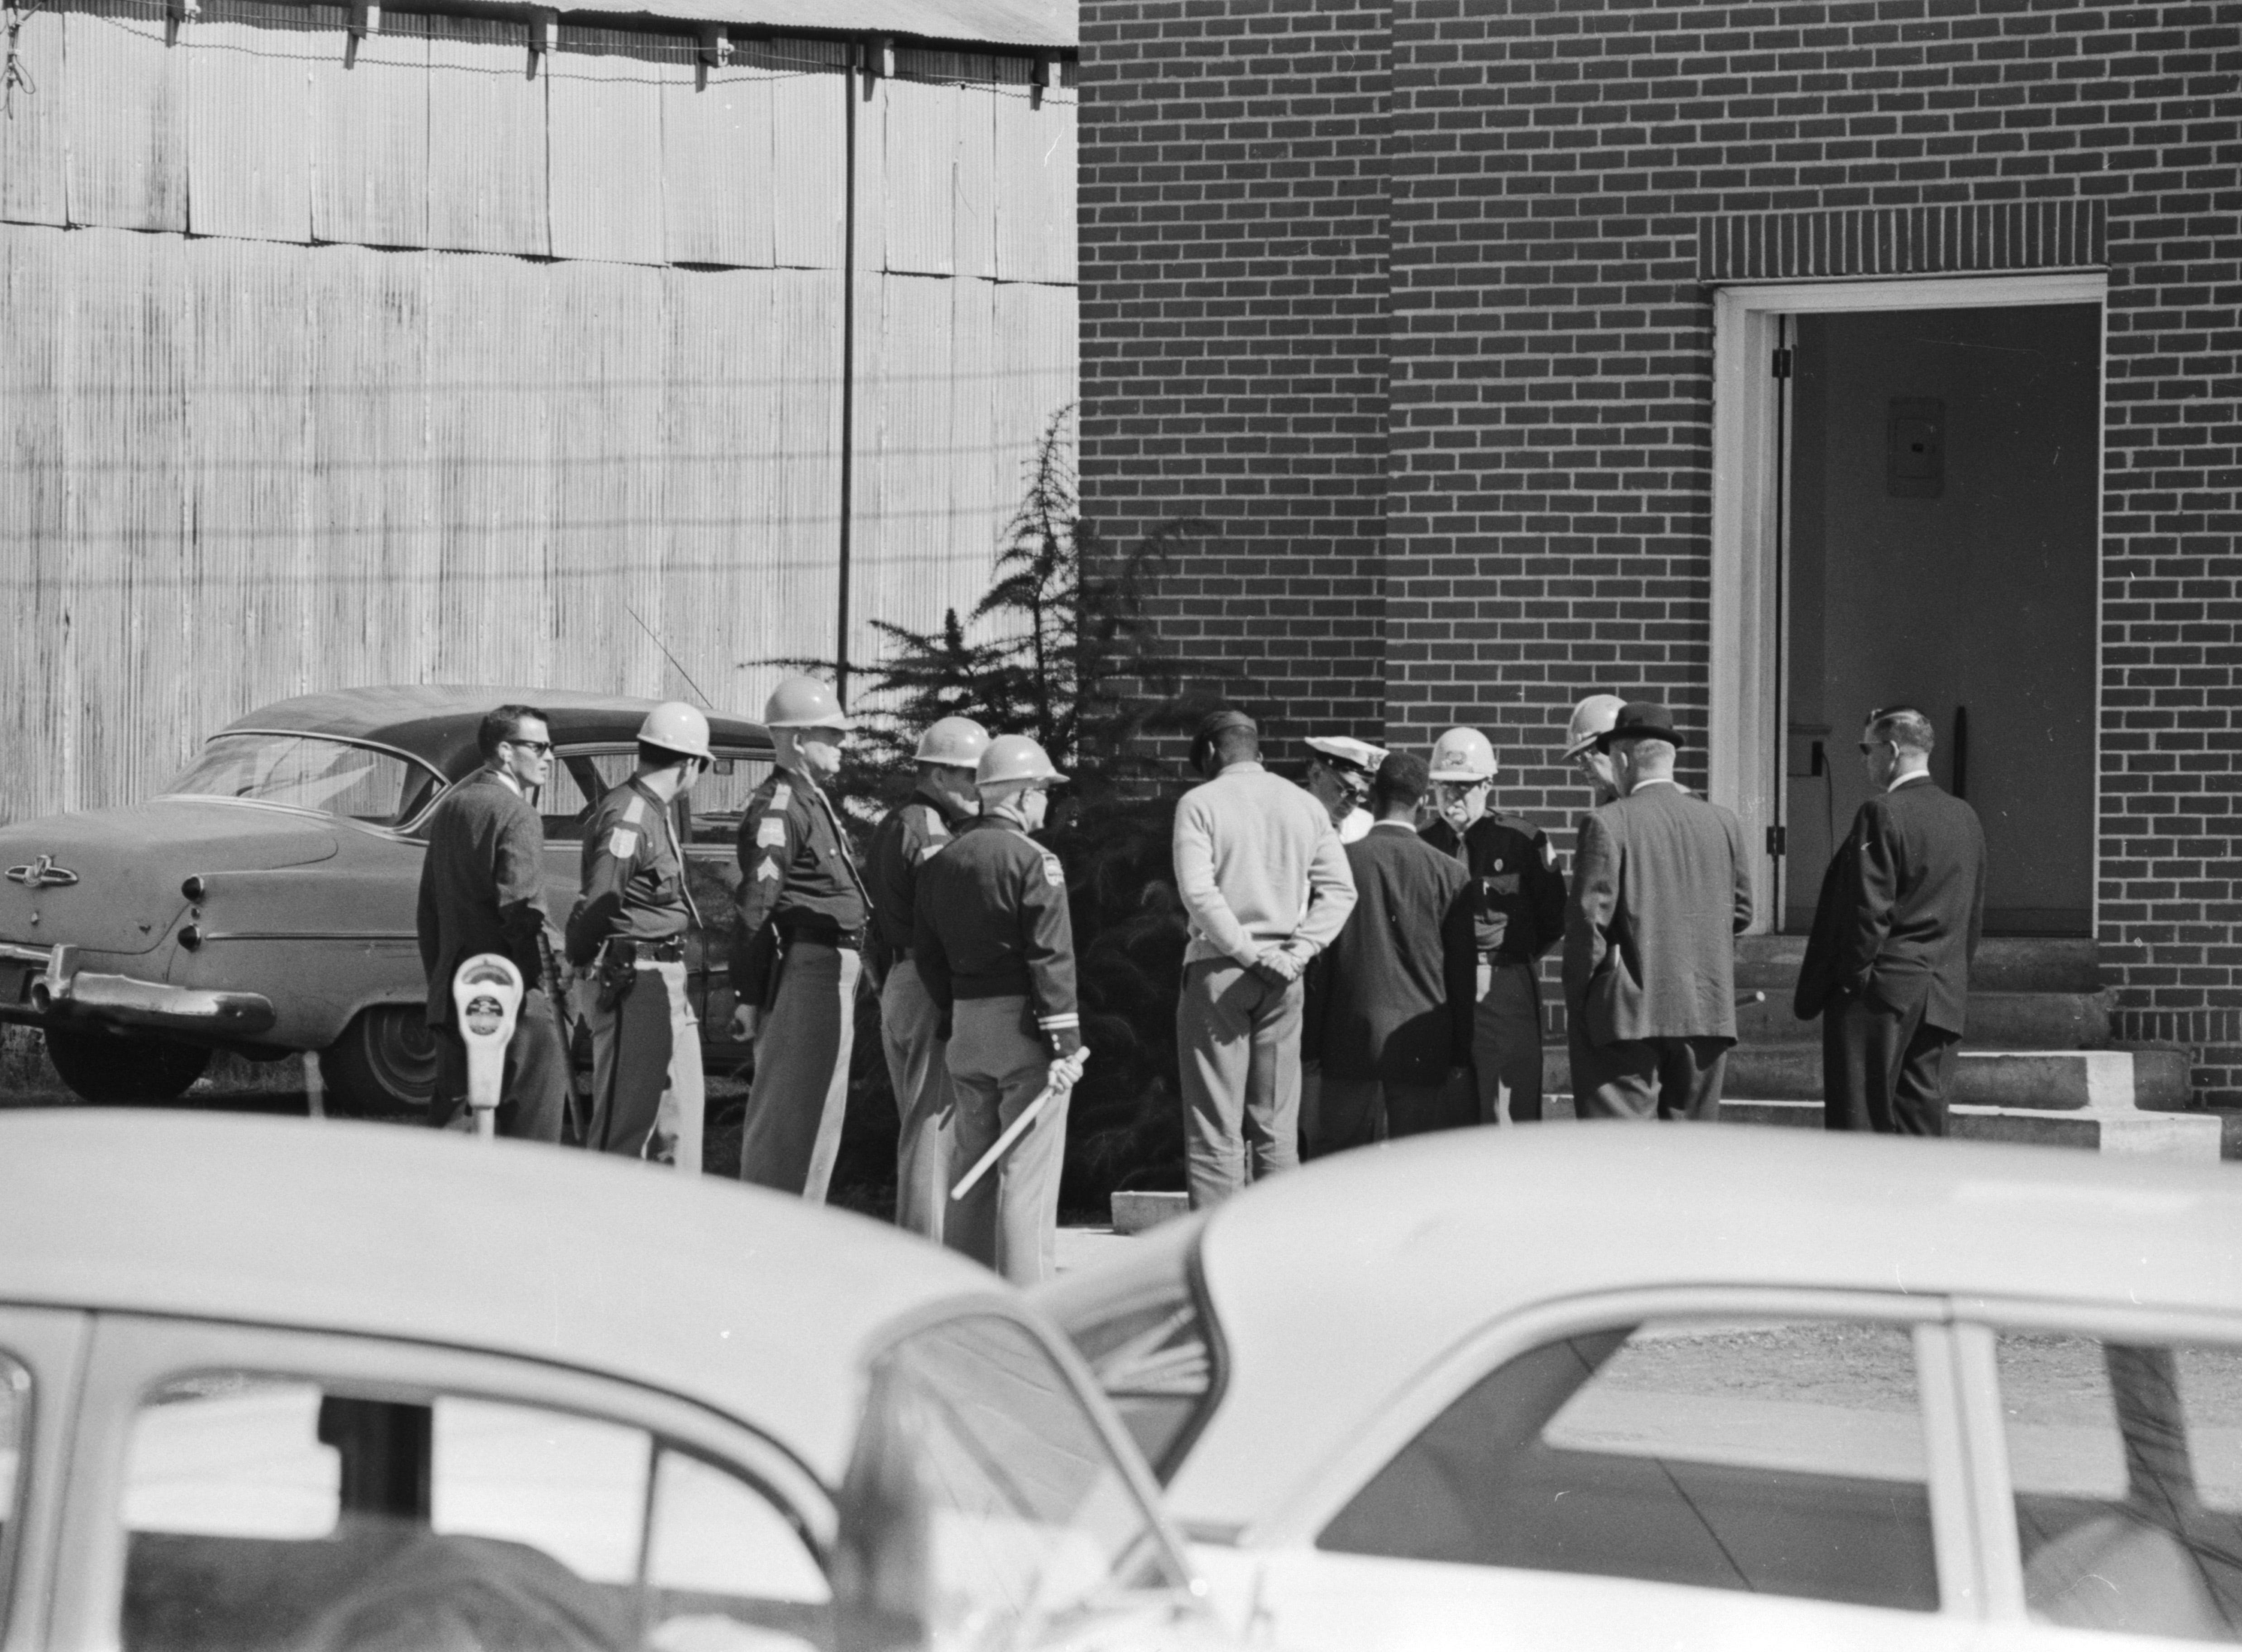 African Americans leaving Zion United Methodist Church in Marion, Alabama, the day after the civil rights demonstration during which Jimmie Lee Jackson was shot.